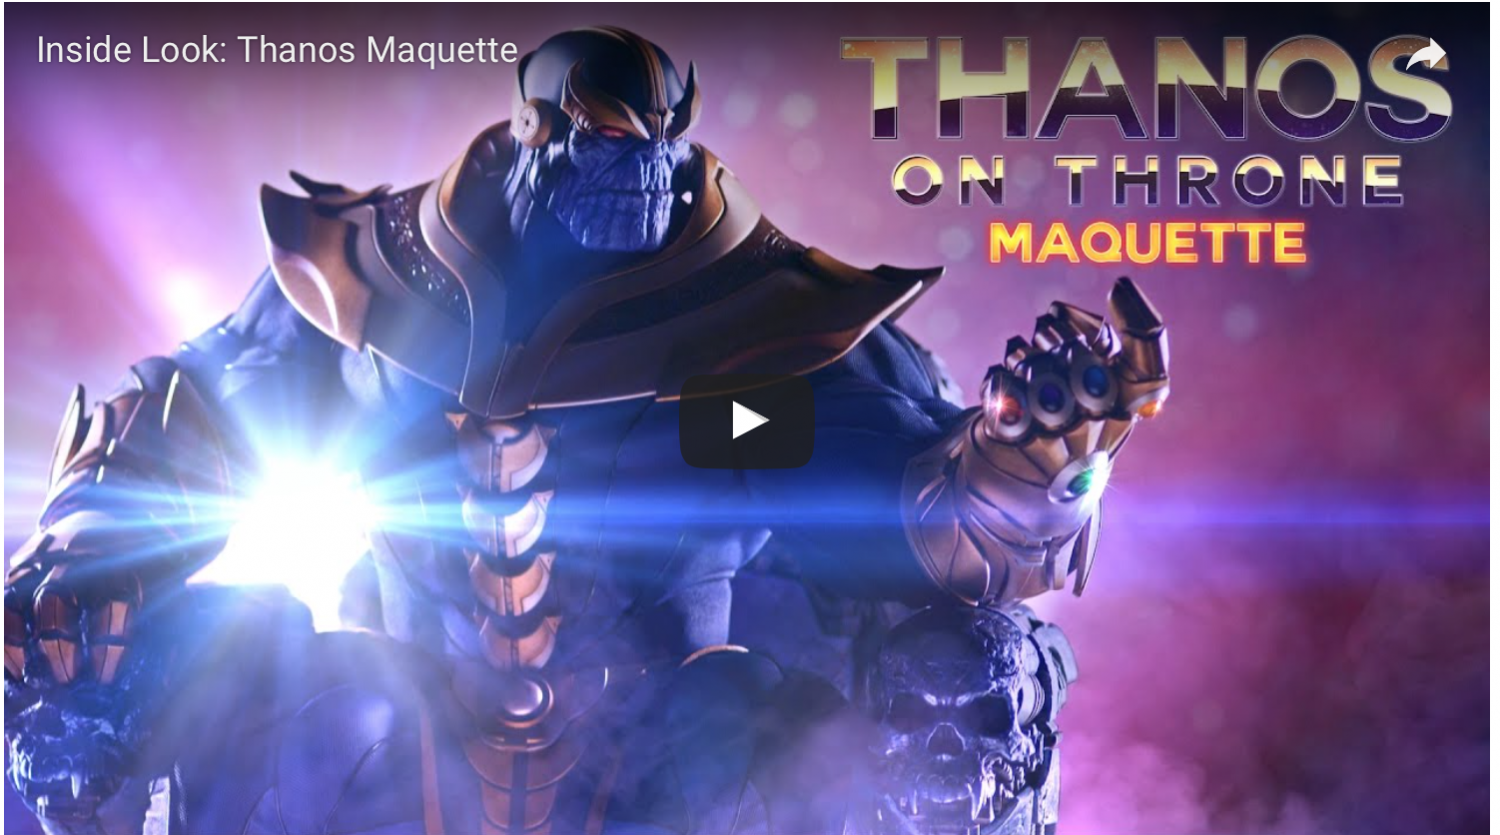 Sideshow Collectibles Marvel's Thanos On Throne Maquette Video Preview